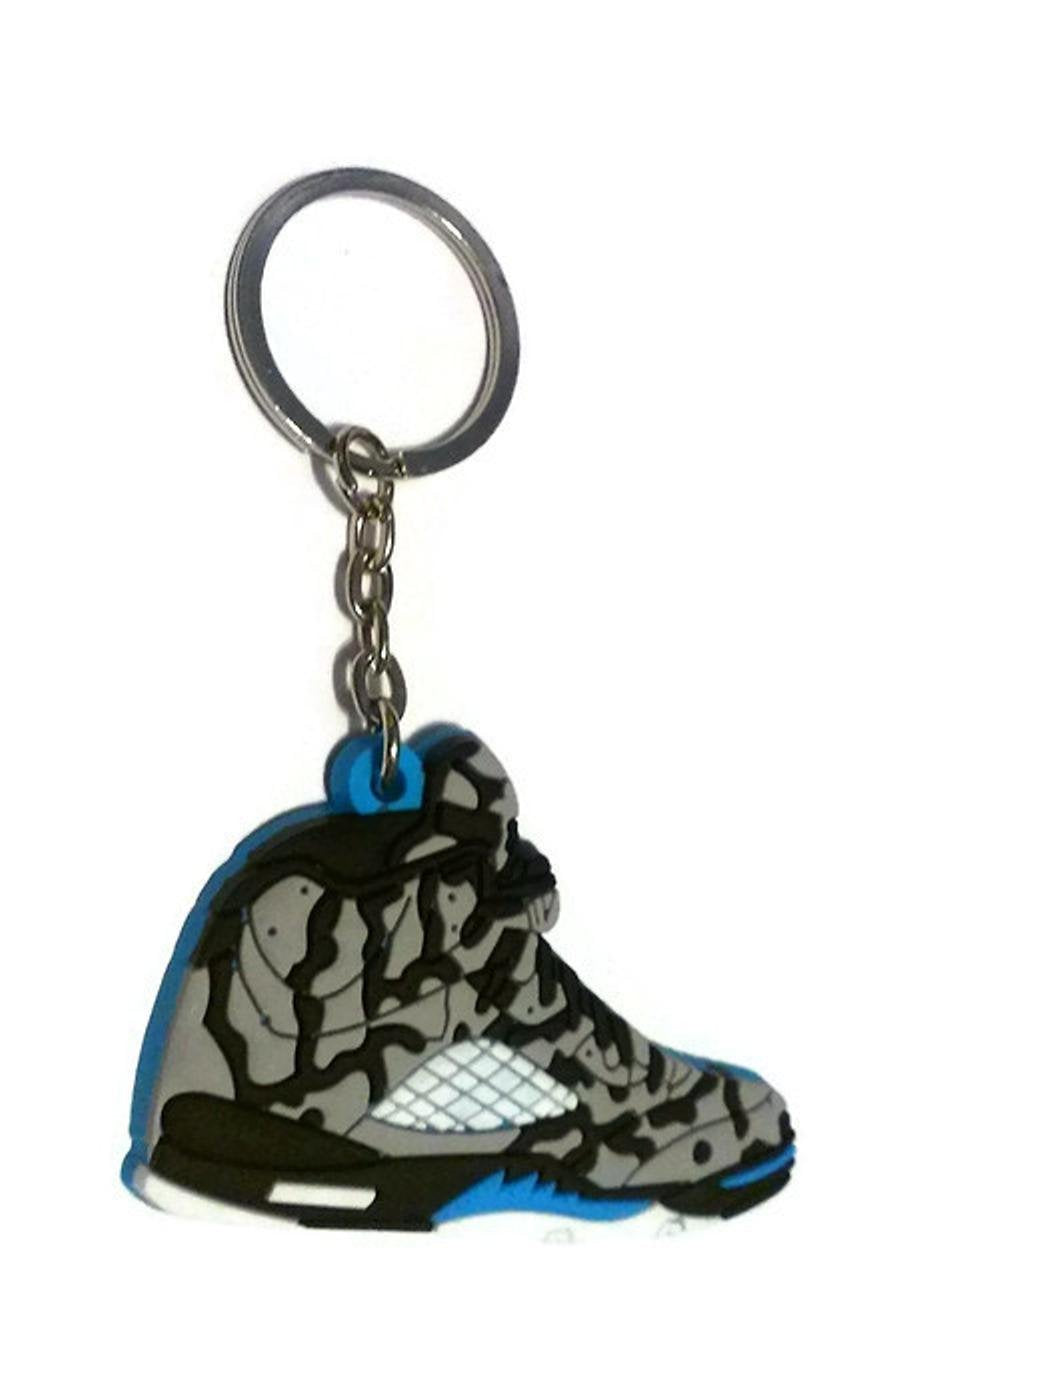 Air Jordan Shoe Key Ring Generation 8 Strap In 3lab5